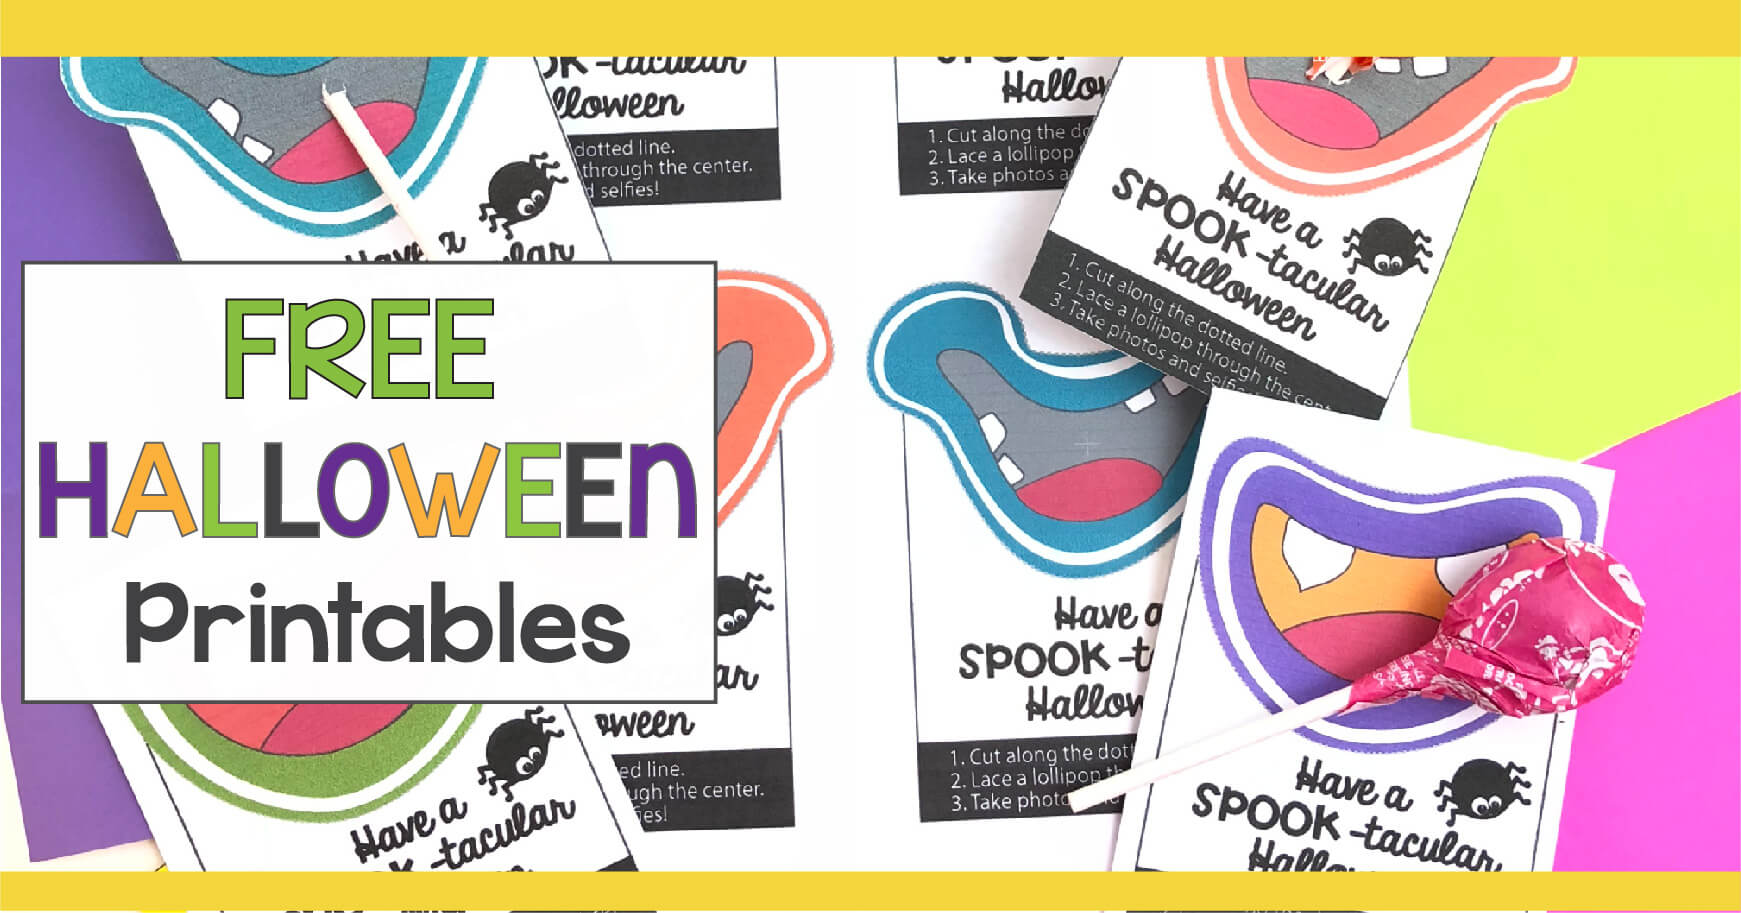 Free Halloween Printables to use in your classroom, for your child's Halloween party or to give to Trick-or-Treaters.